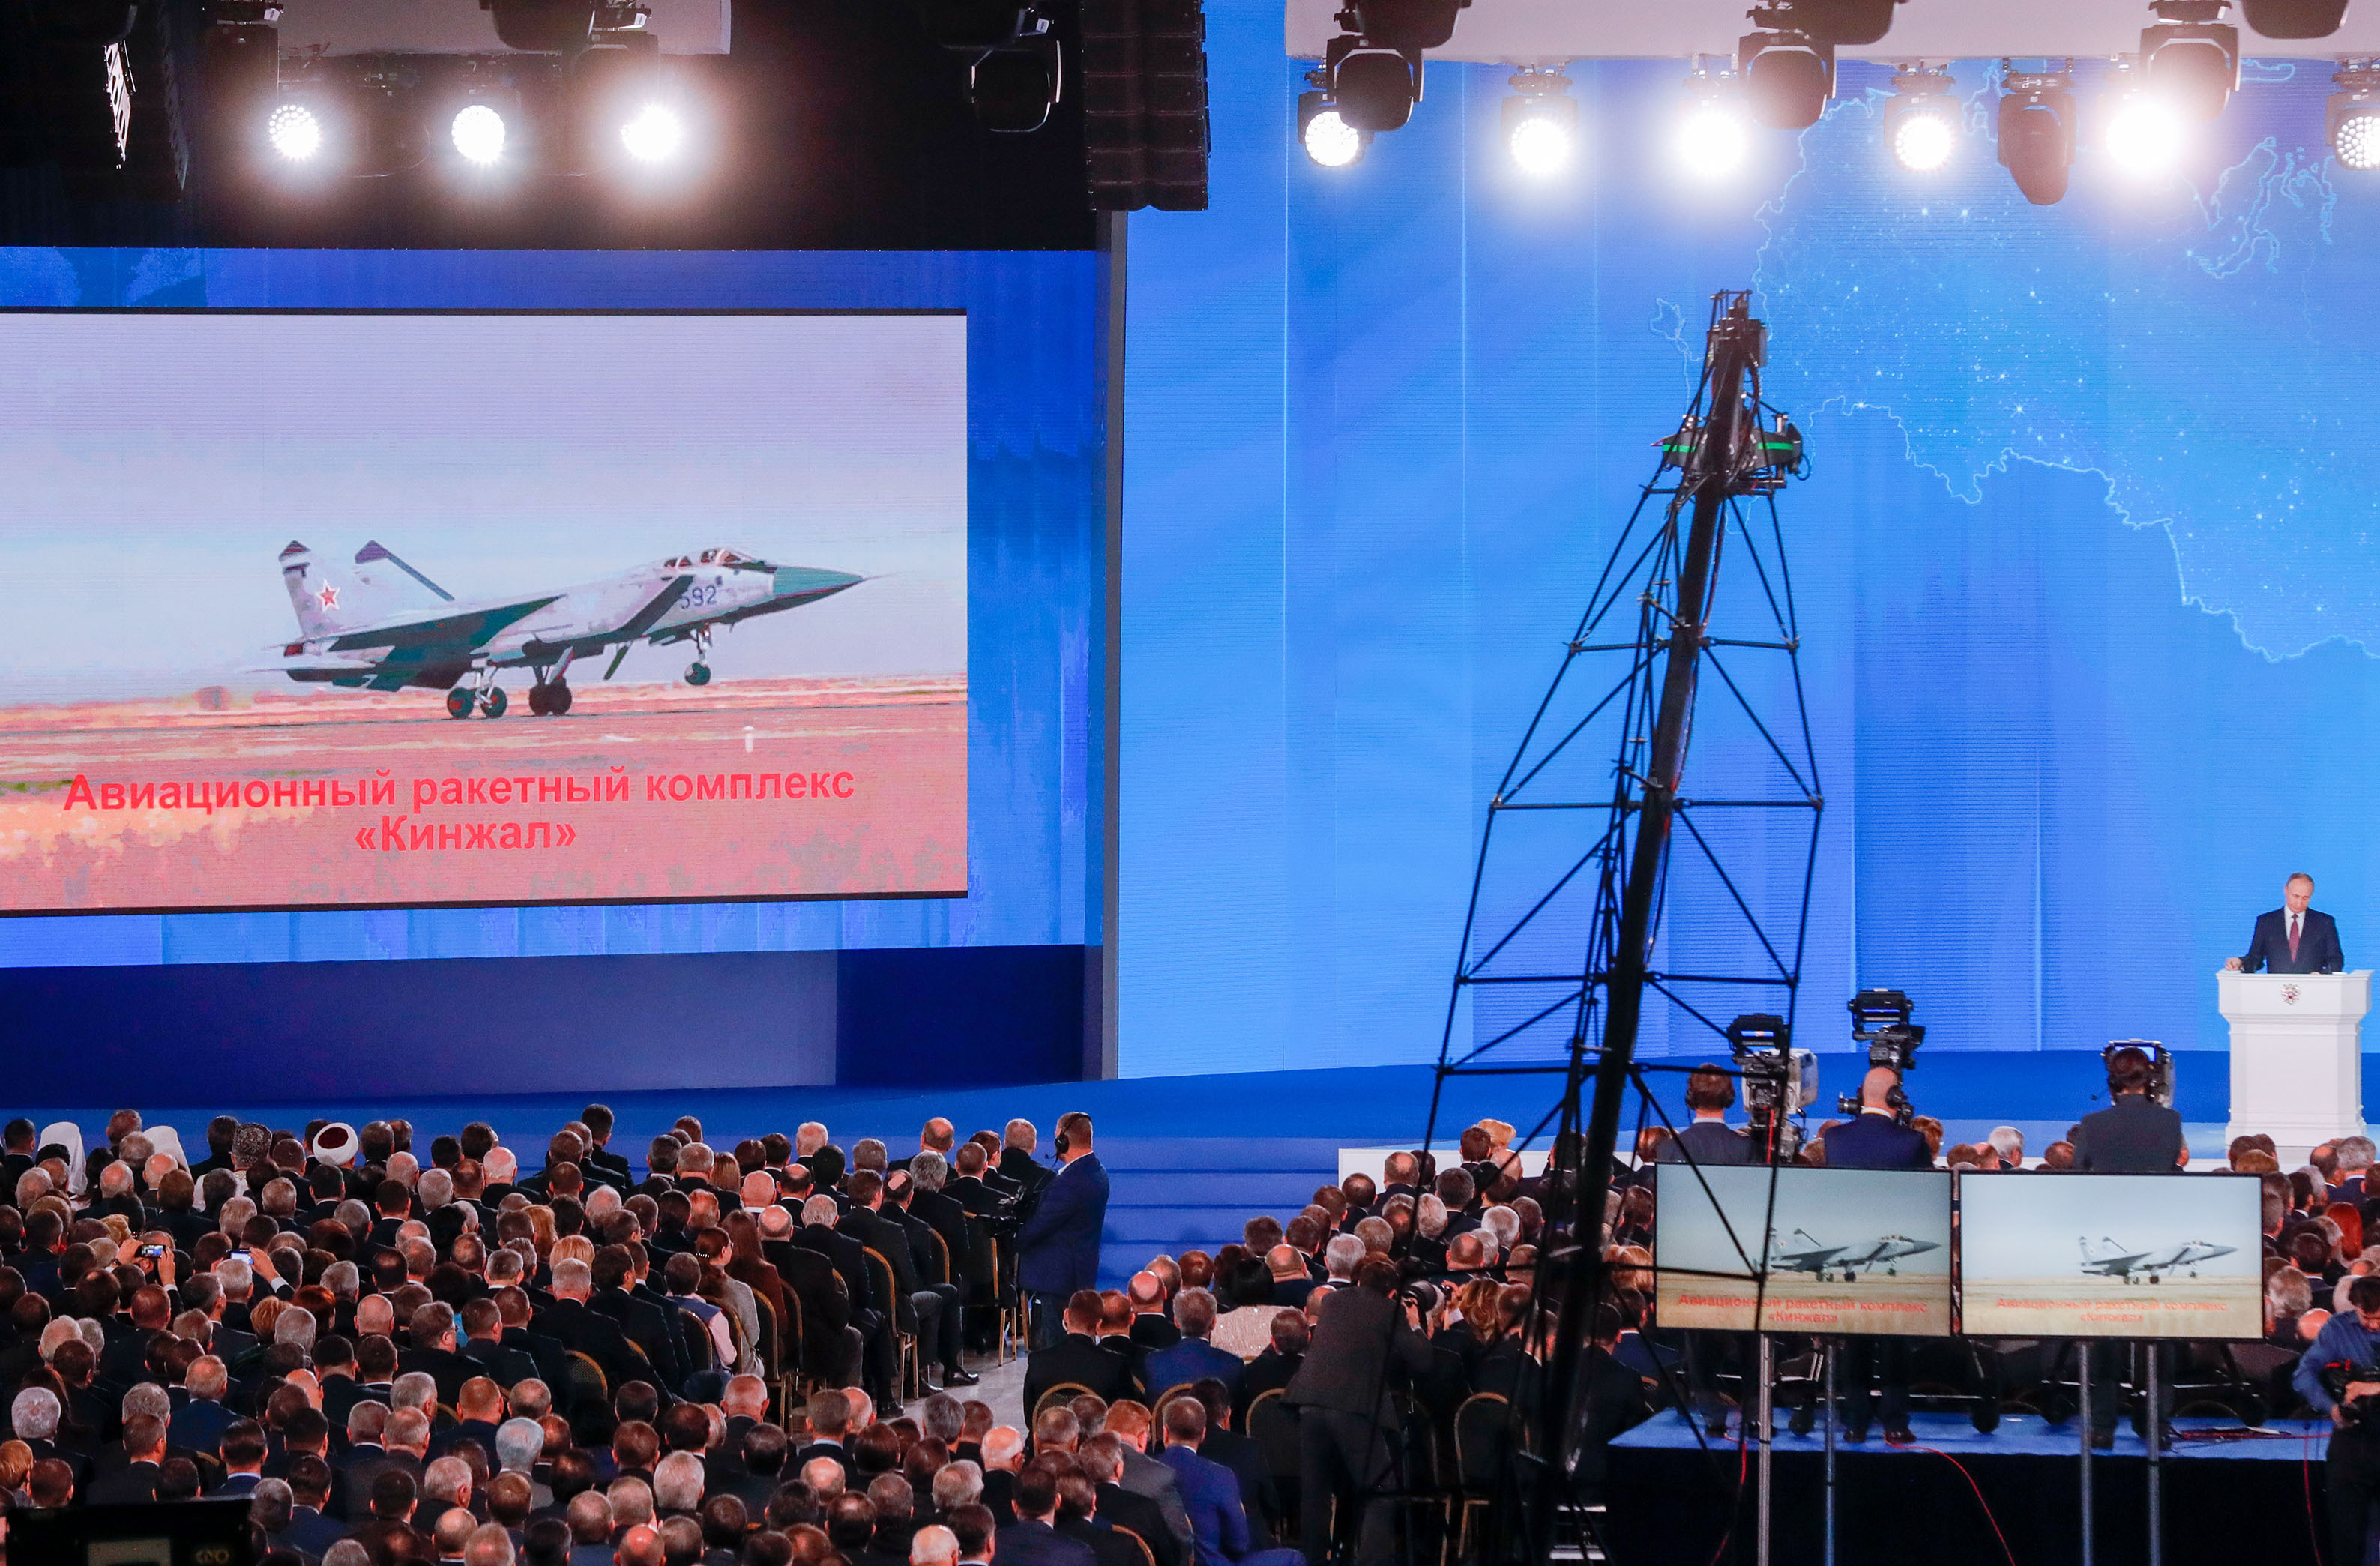 MOSCOW, RUSSIA - MARCH 1, 2018: The video screen shows the Kinzhal air missile system as Russia's President Vladimir Putin (R back standing) delivers an annual address to the Federal Assembly of the Russian Federation, at Moscow's Manezh Central Exhibition Hall; the Federal Assembly of Russia consists of the State Duma of Russia and the Federation Council of Russia. Mikhail Metzel/TASS (Photo by Mikhail MetzelTASS via Getty Images)